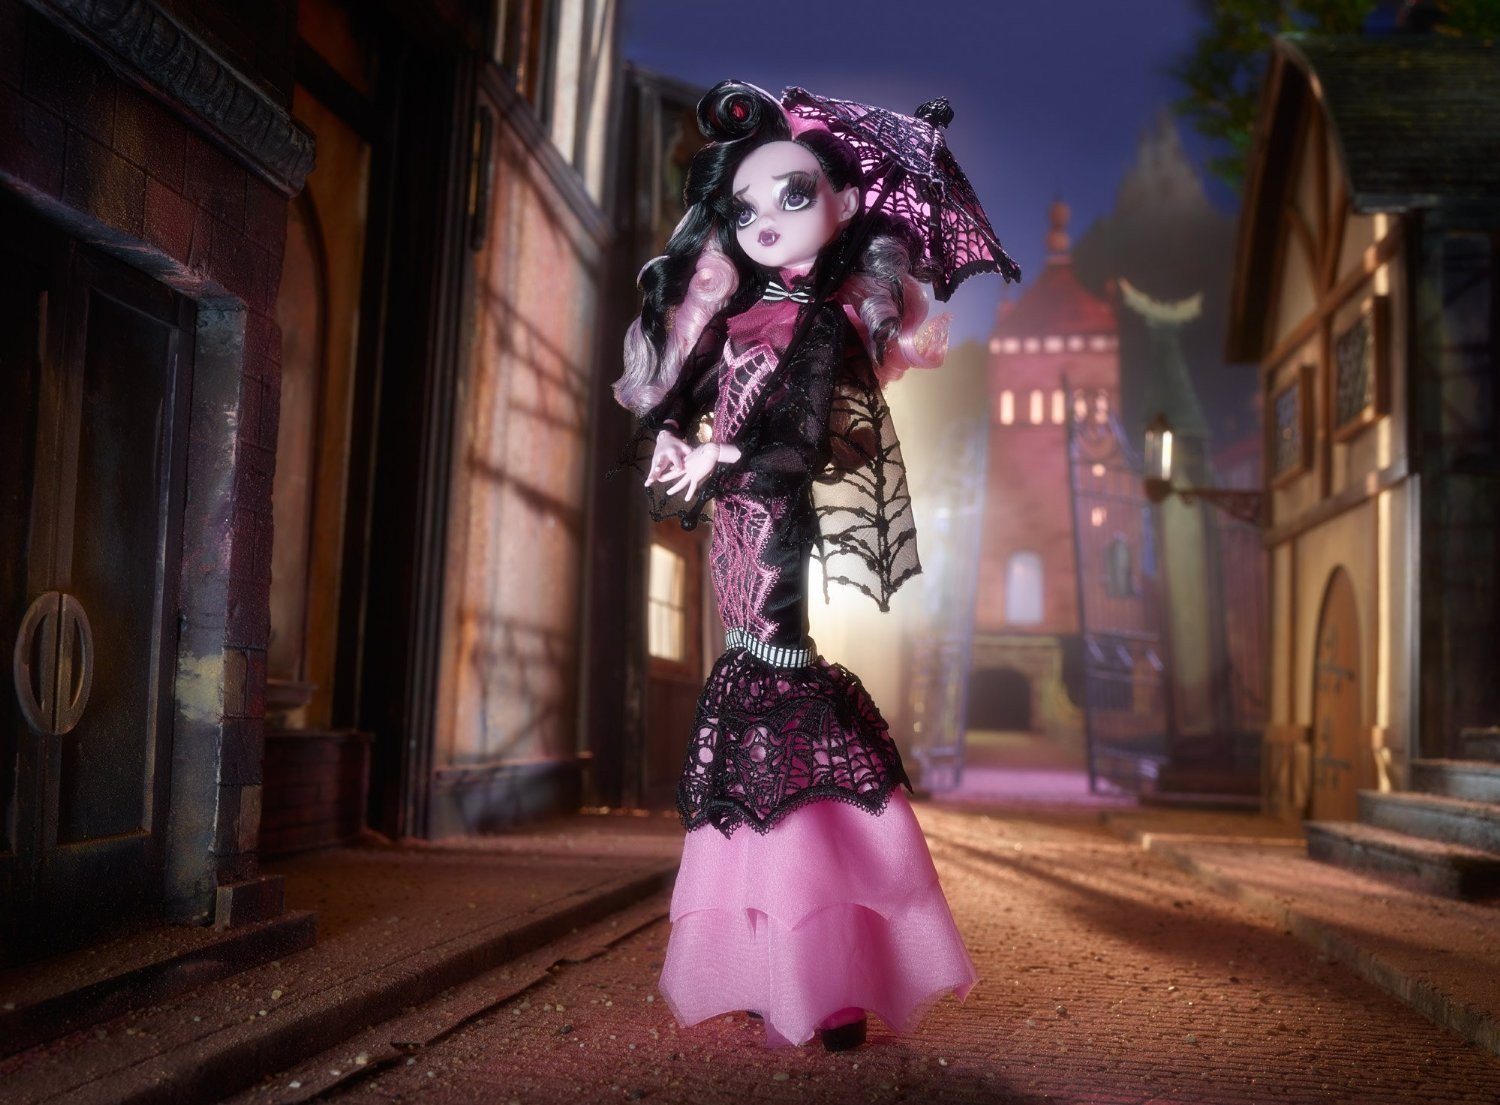 7976988164b Dressed in a gore-geous gown and accessorized with boo-tiful pieces, this  Draculaura doll stands out as a collector item for fans and doll lovers  alike ...